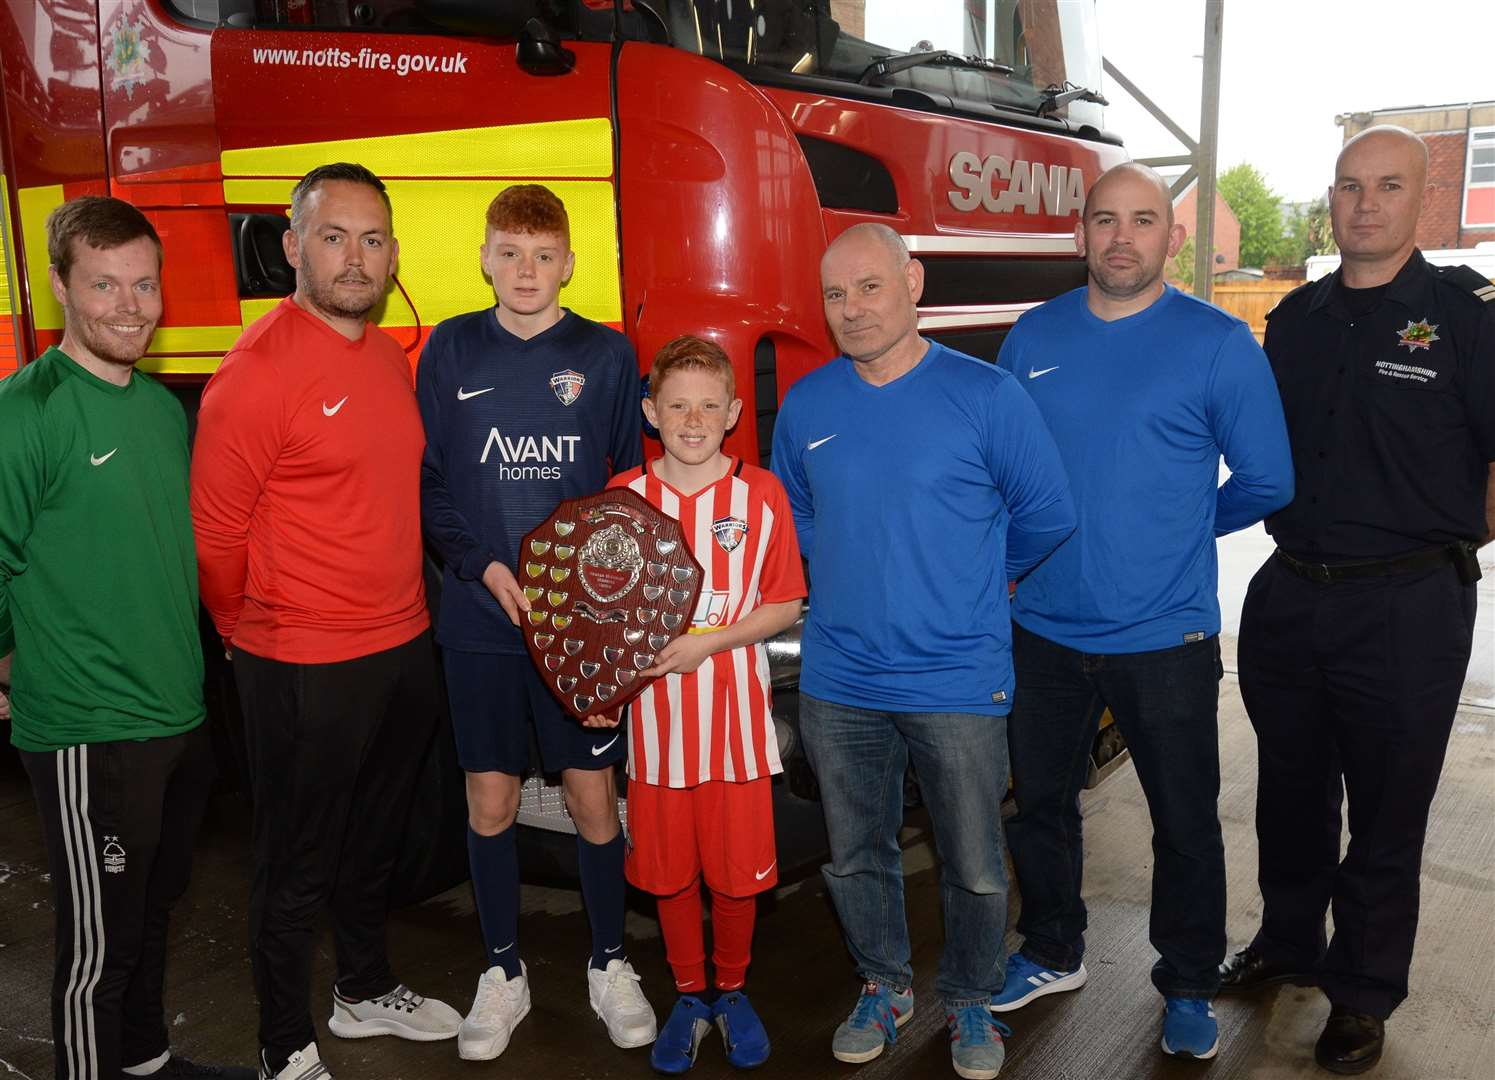 Left to right: Tom Clayton and Matt Ridyard from The Warriors team, Graham McGuigan's sons Jed, 14, and Brady, 12, and Crew Managers at Newark Fire Station, Mark Woolnough, Chris Tate and Darren Charters. 100519DC1-1. (10187626)